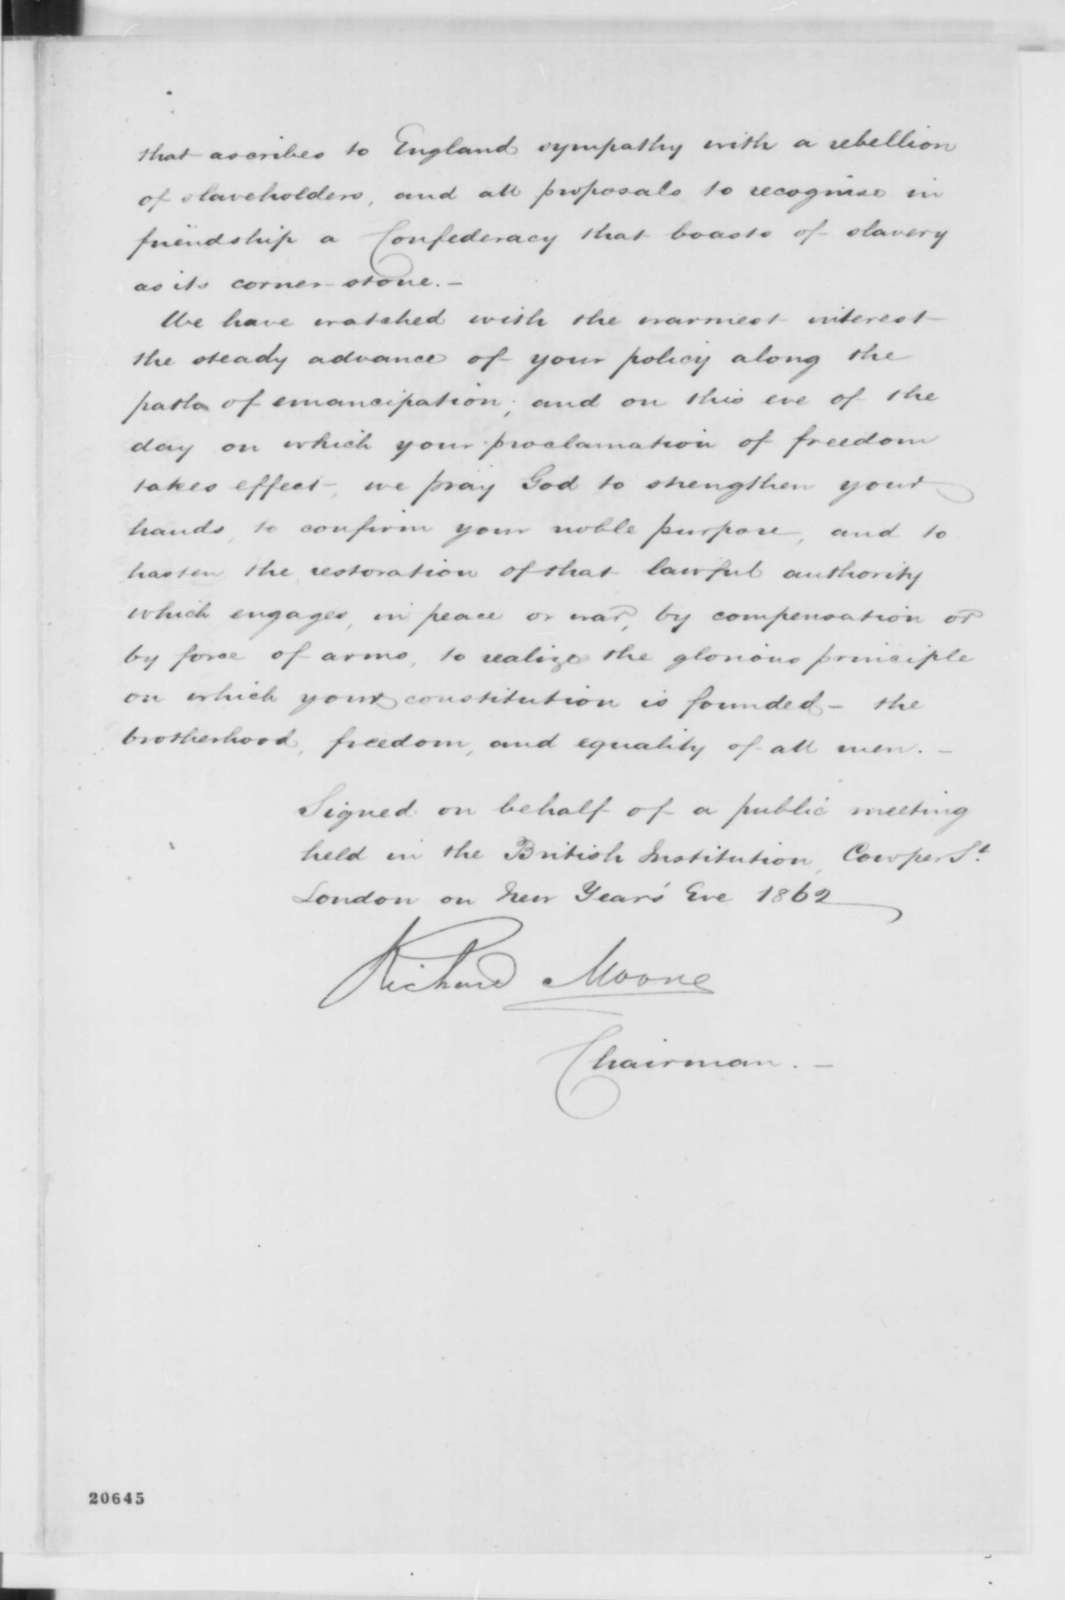 London England Workingmen to Abraham Lincoln, Wednesday, December 31, 1862  (Support for emancipation and free labor)